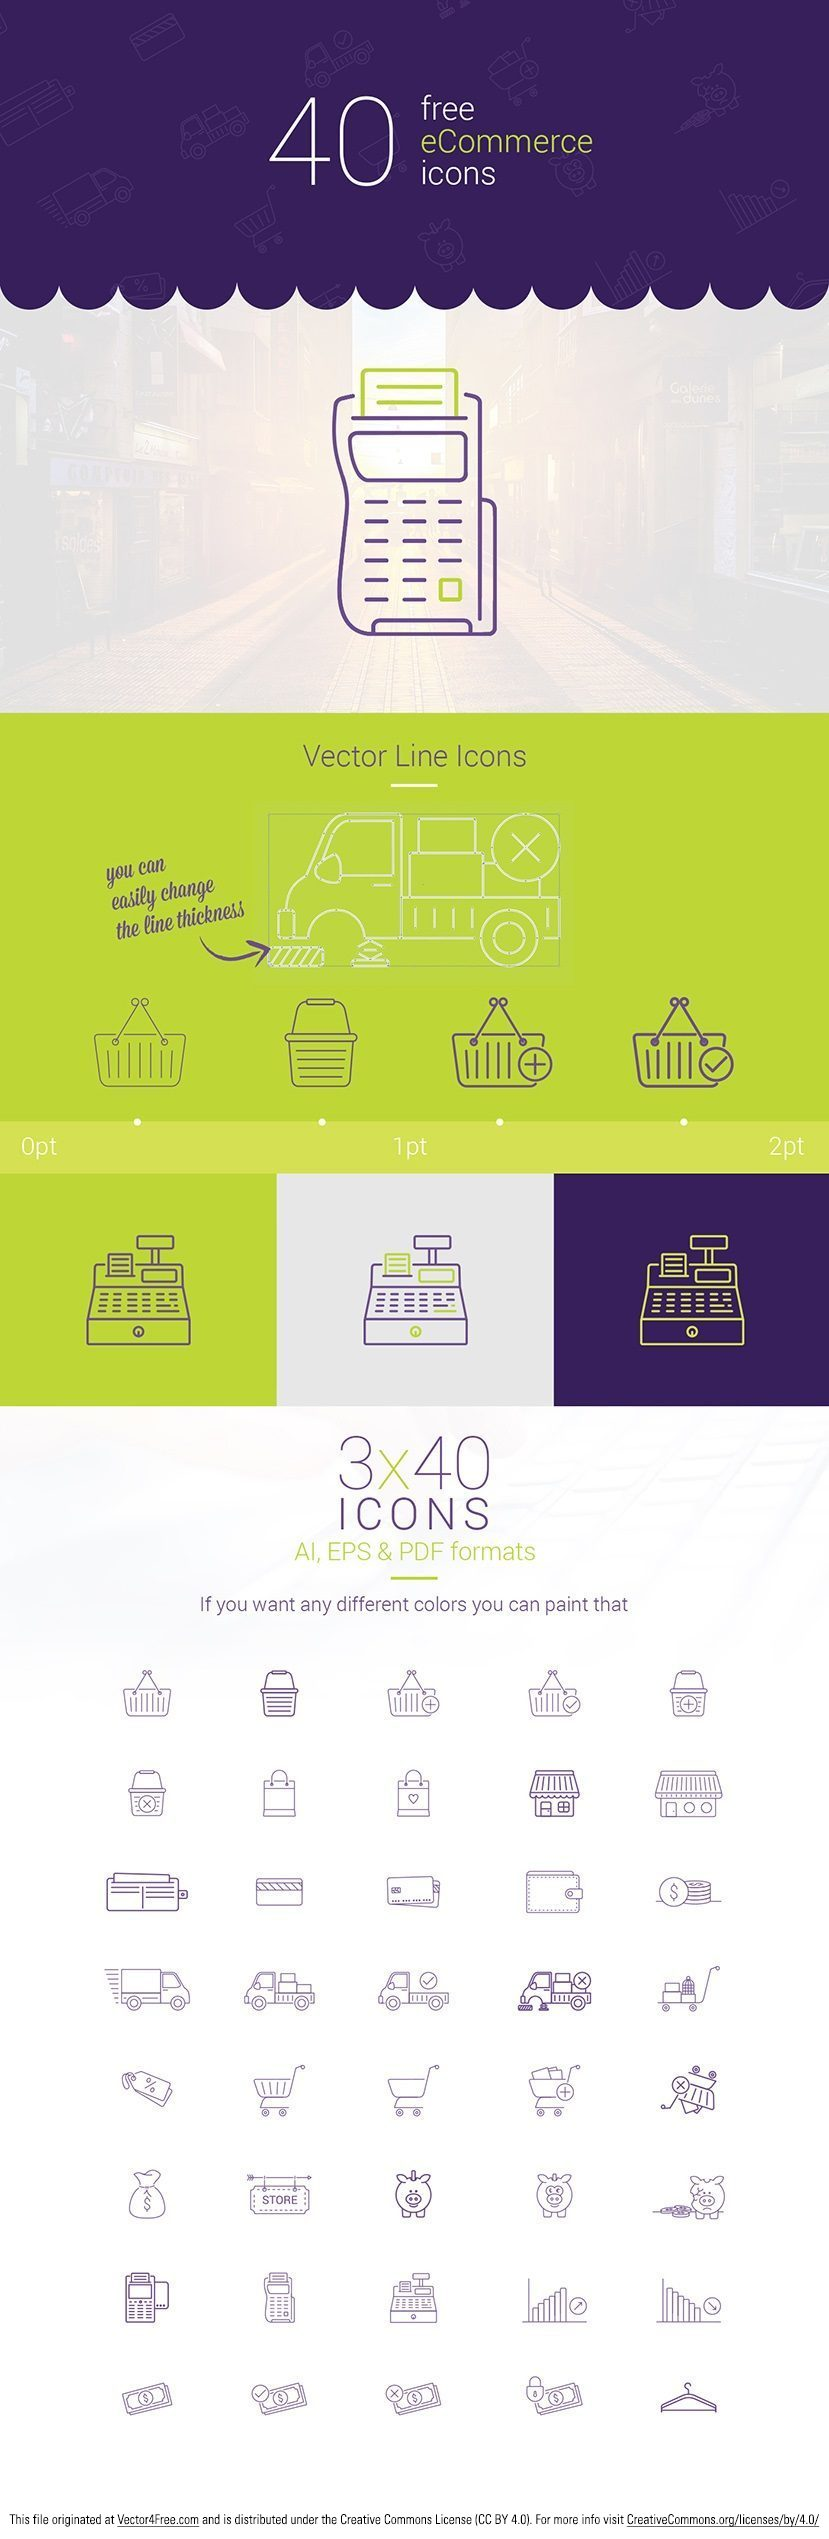 Check out this new download of free 40 vector eCommerce icons in three different colors. Free download contain both, Adobe illustrator (.ai), PDF and Encapsulated PostScript (.eps) file formats.